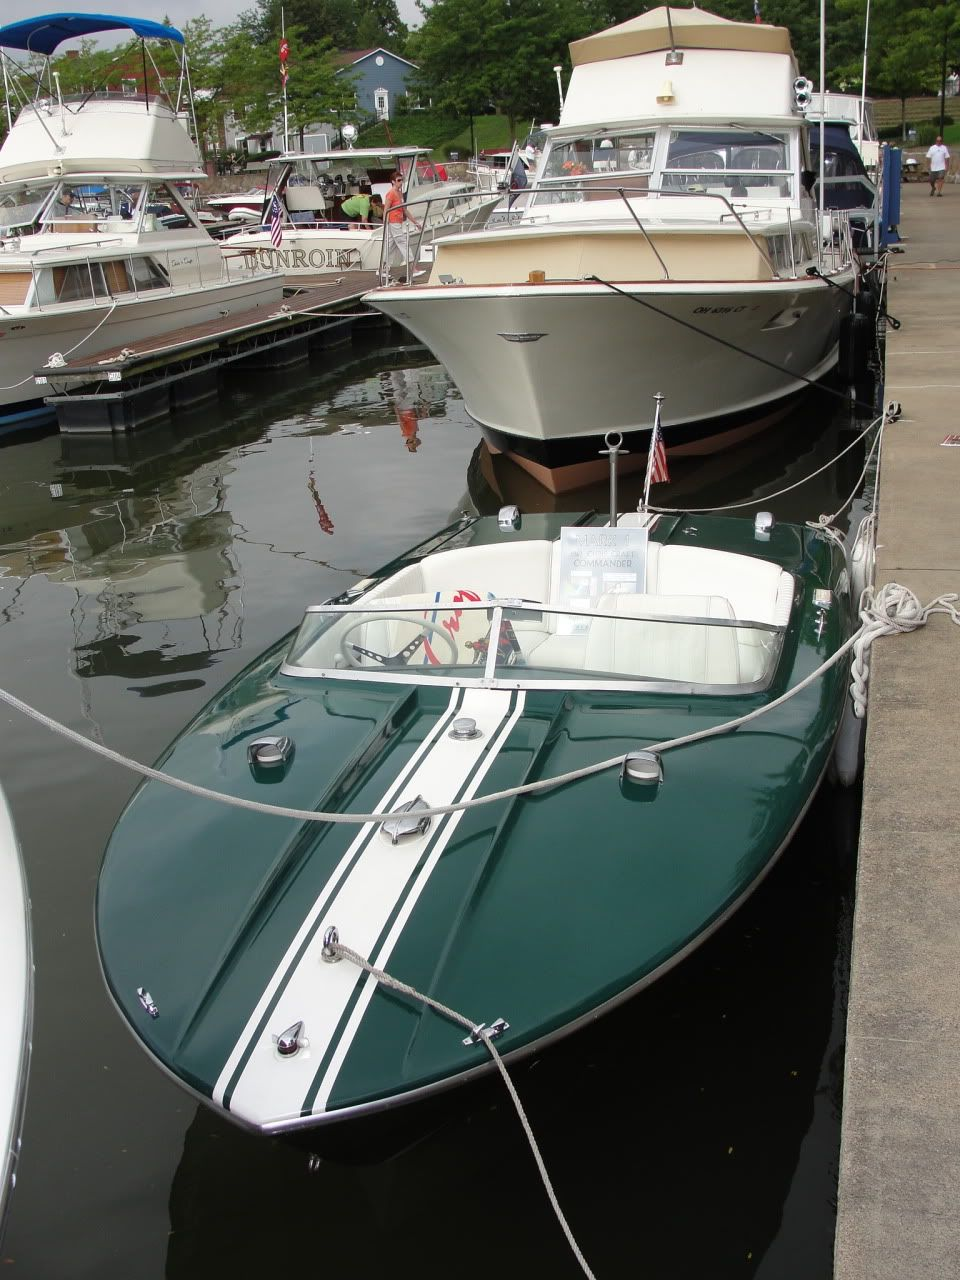 Pin By Kenchy Ragsdale On Chris Craft Wooden And Classic Boats Runabout Boat Vintage Boats Classic Boats